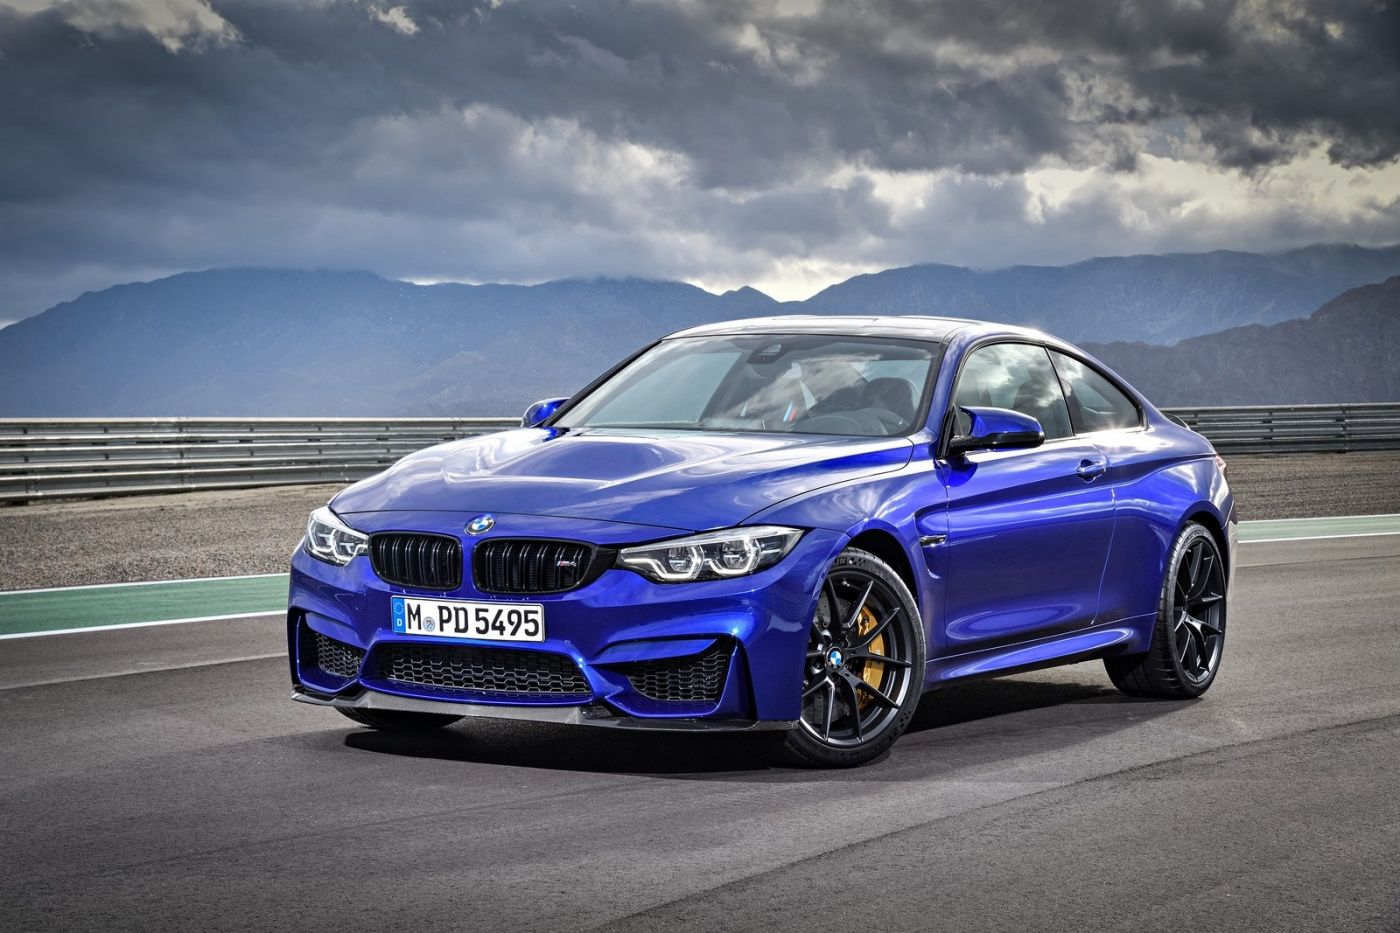 Bmw M4 Cs For A Handful Of Horses With Images Bmw M4 Bmw Car